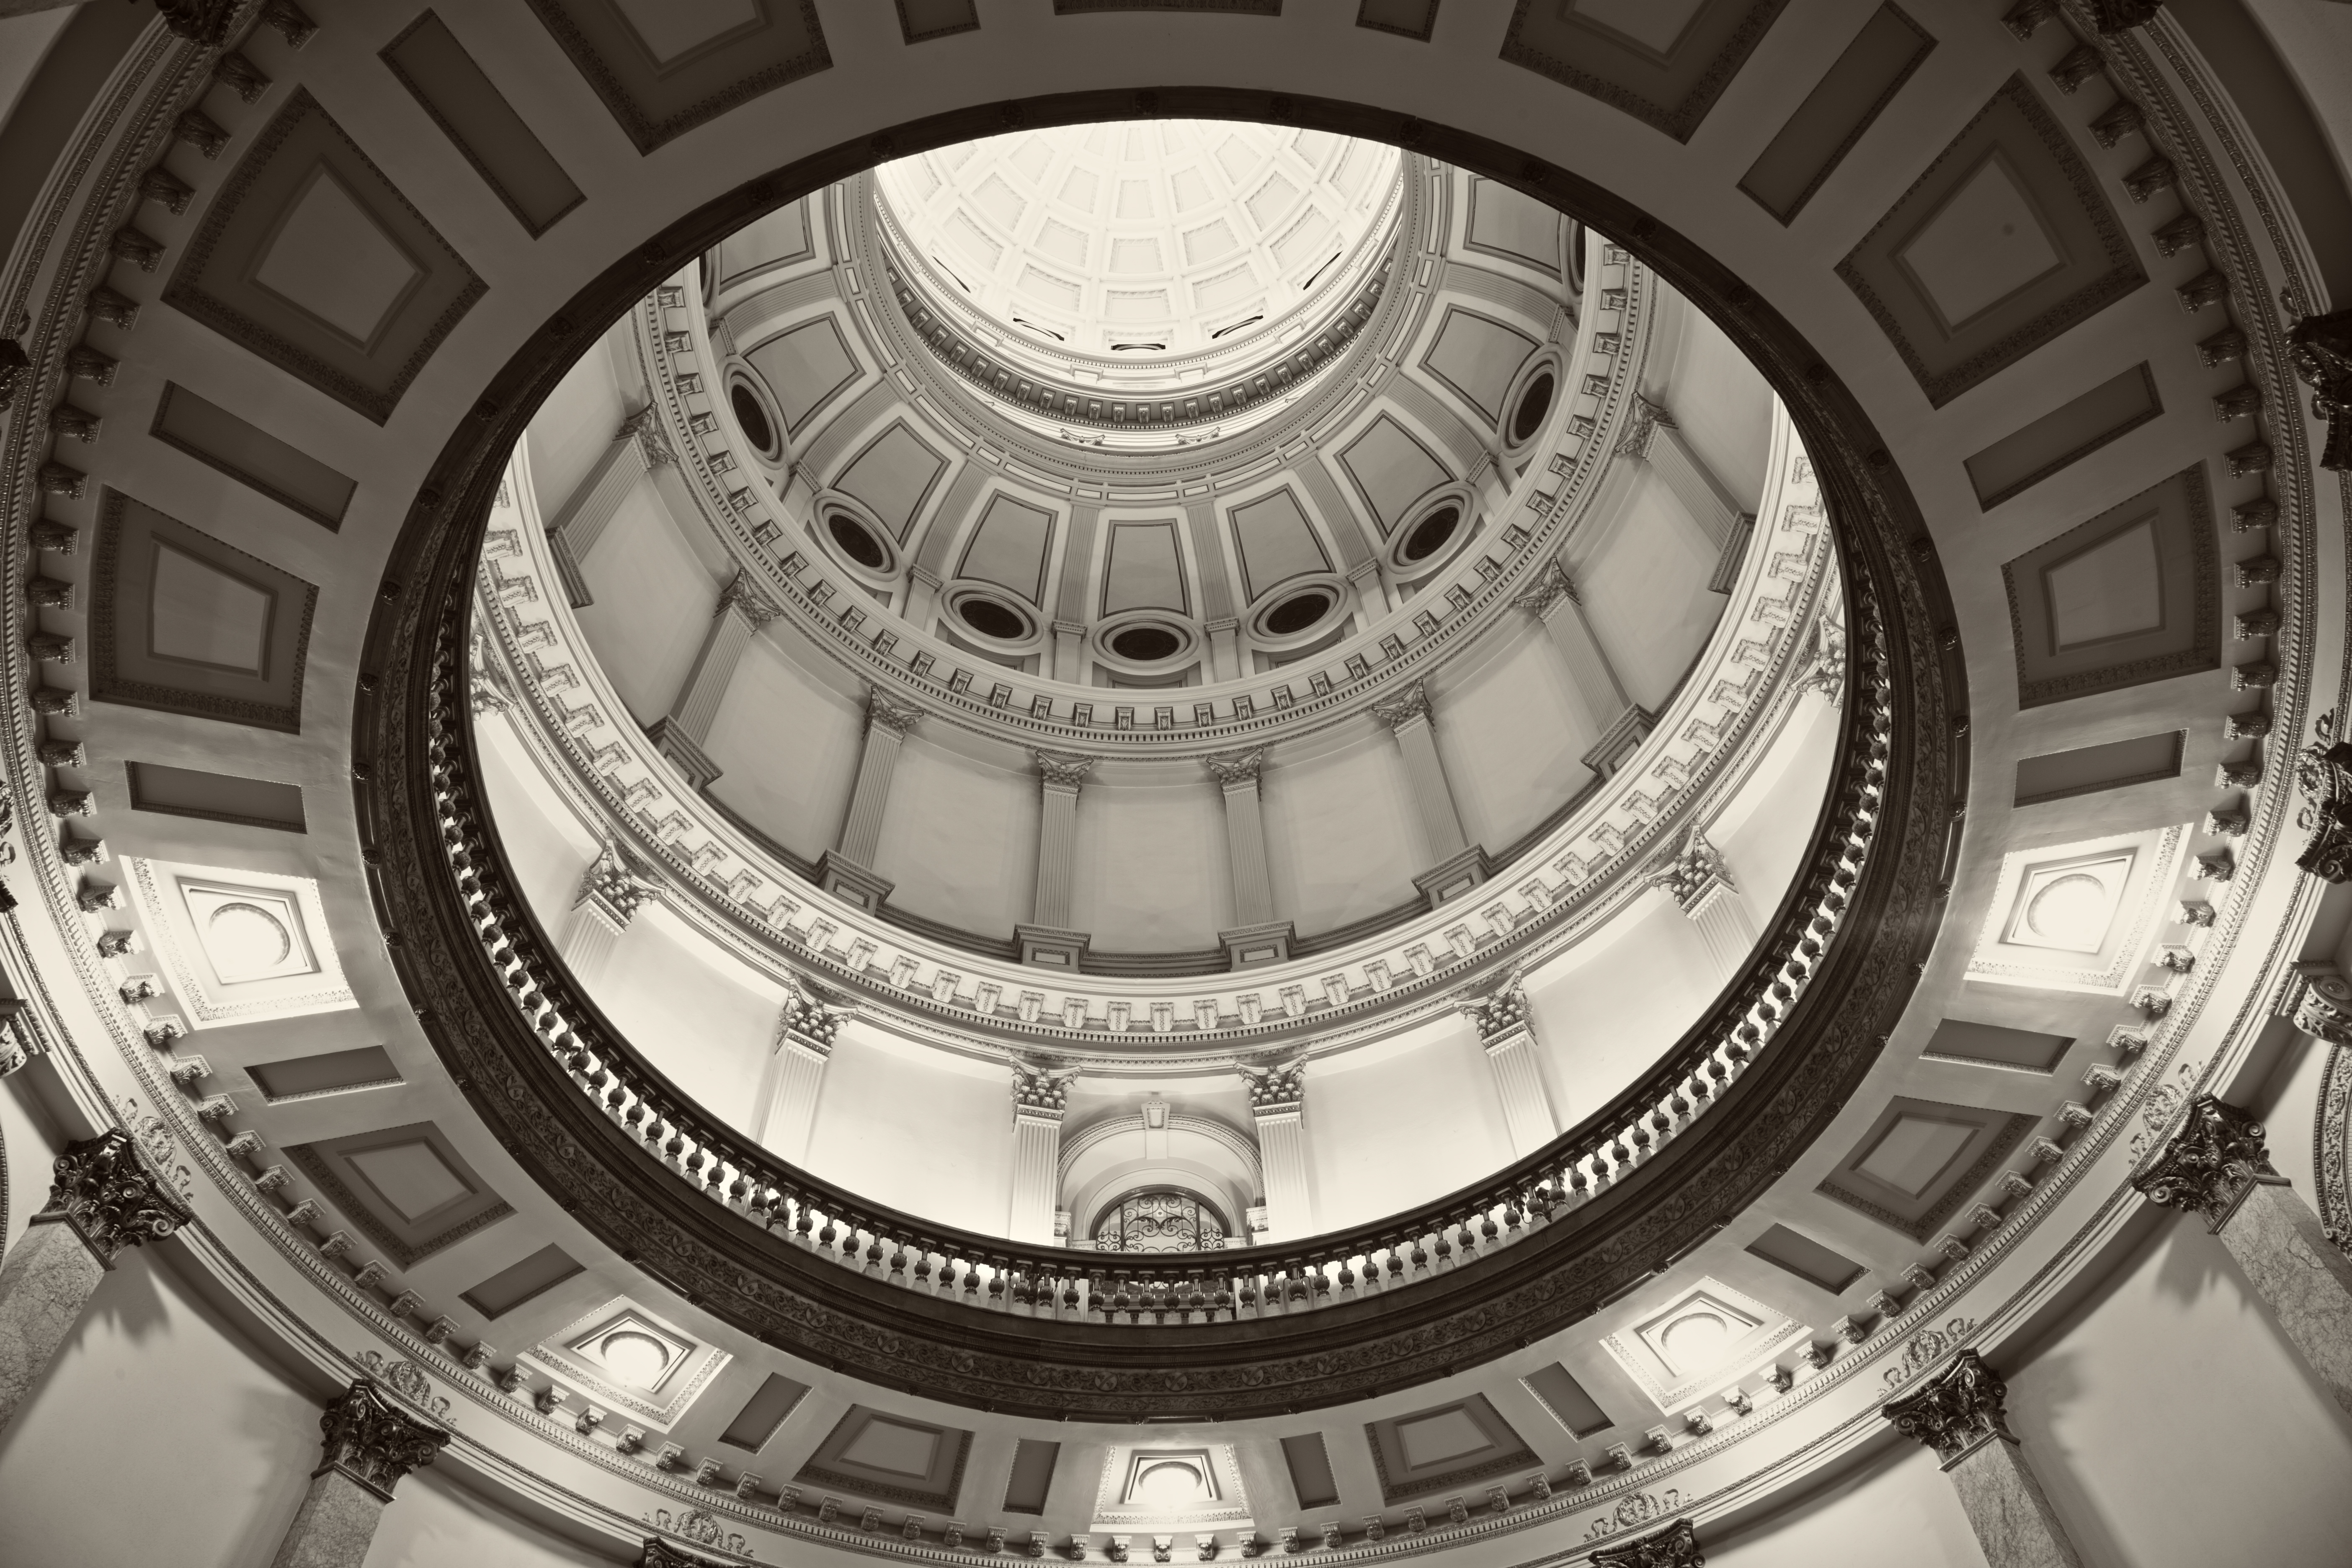 Denver Colorado - inside State Capitol Building. BW image.